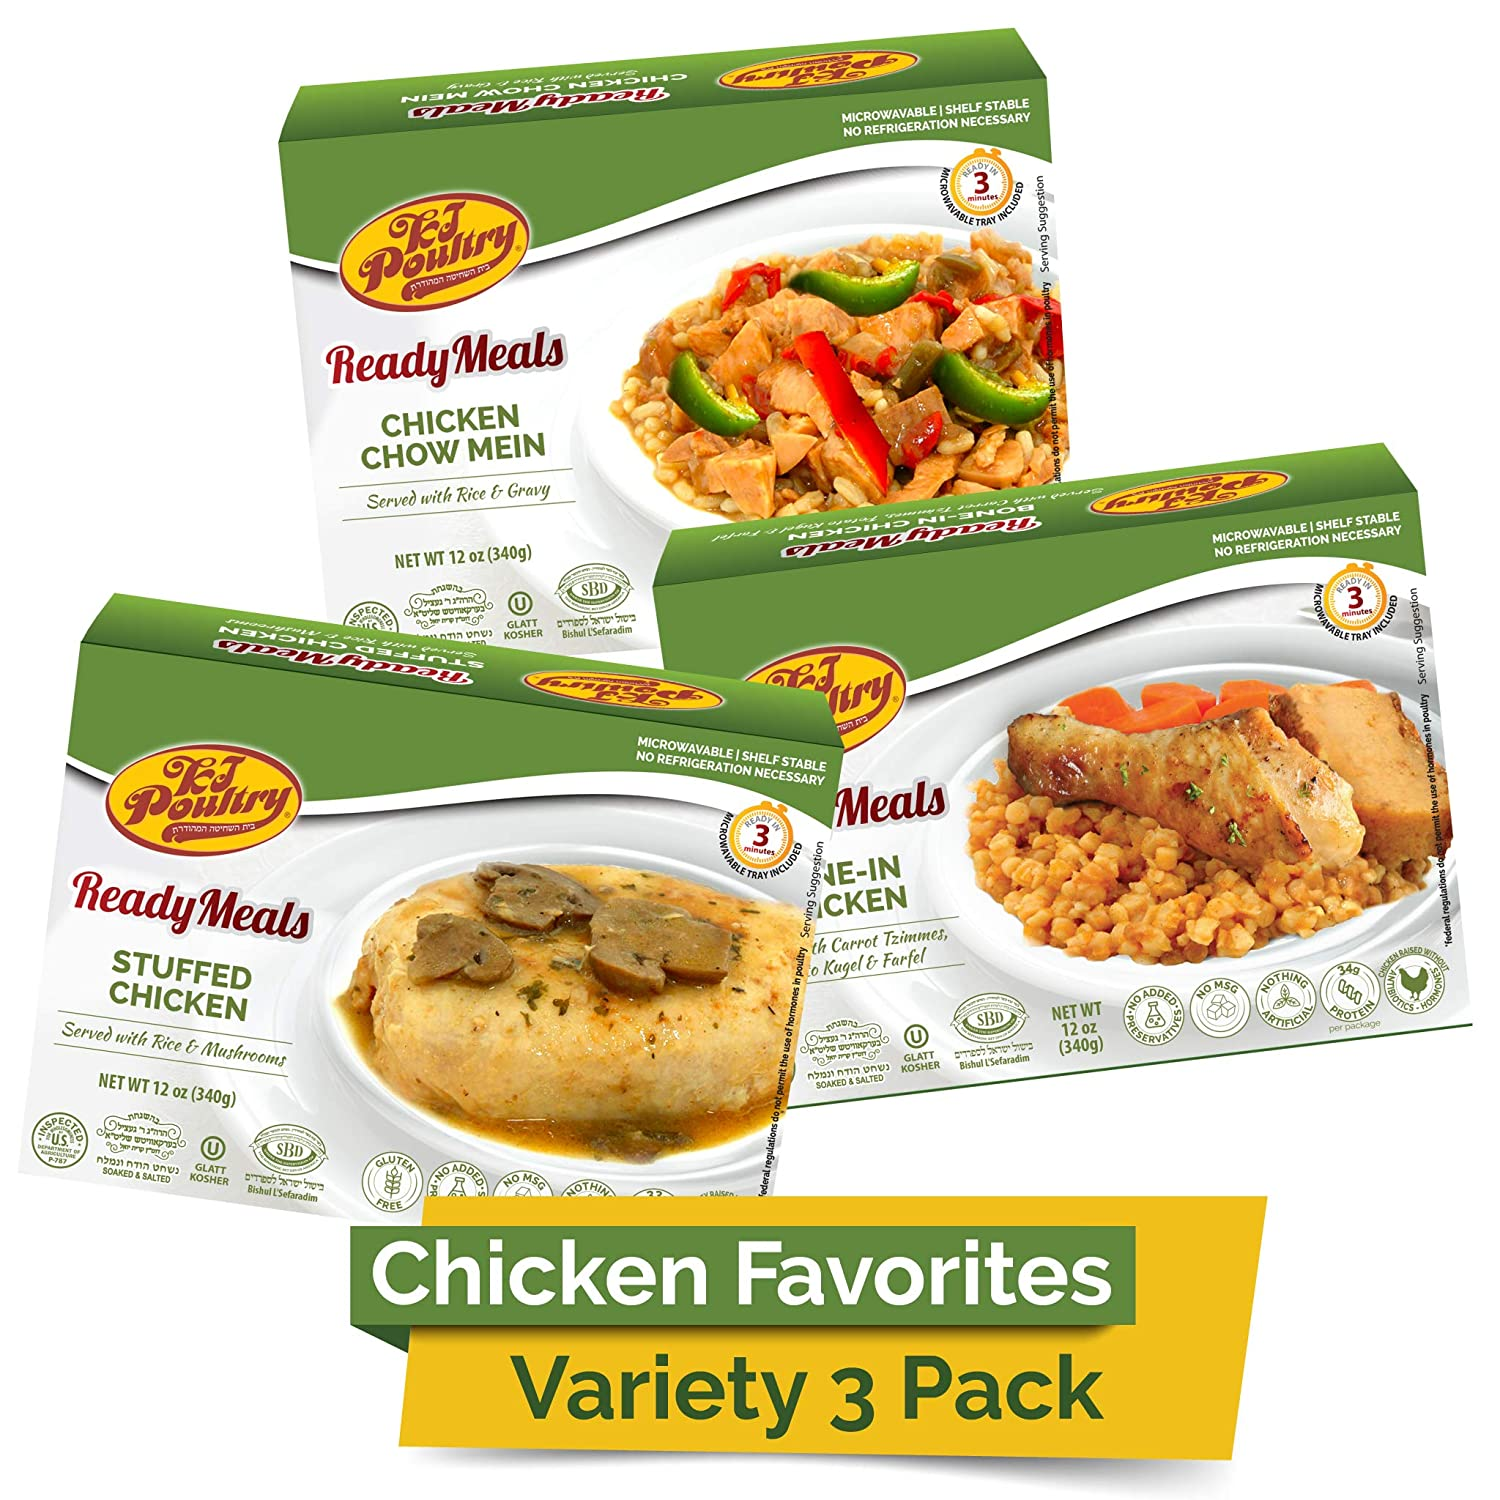 Kosher Mre Meat Meals Ready to Eat, Chicken Favorites Variety (3 Pack) - Prepared Entree Fully Cooked, Shelf Stable Microwave Dinner - Canned Goods Emergency Storage Kit, Military Survival Food Supply